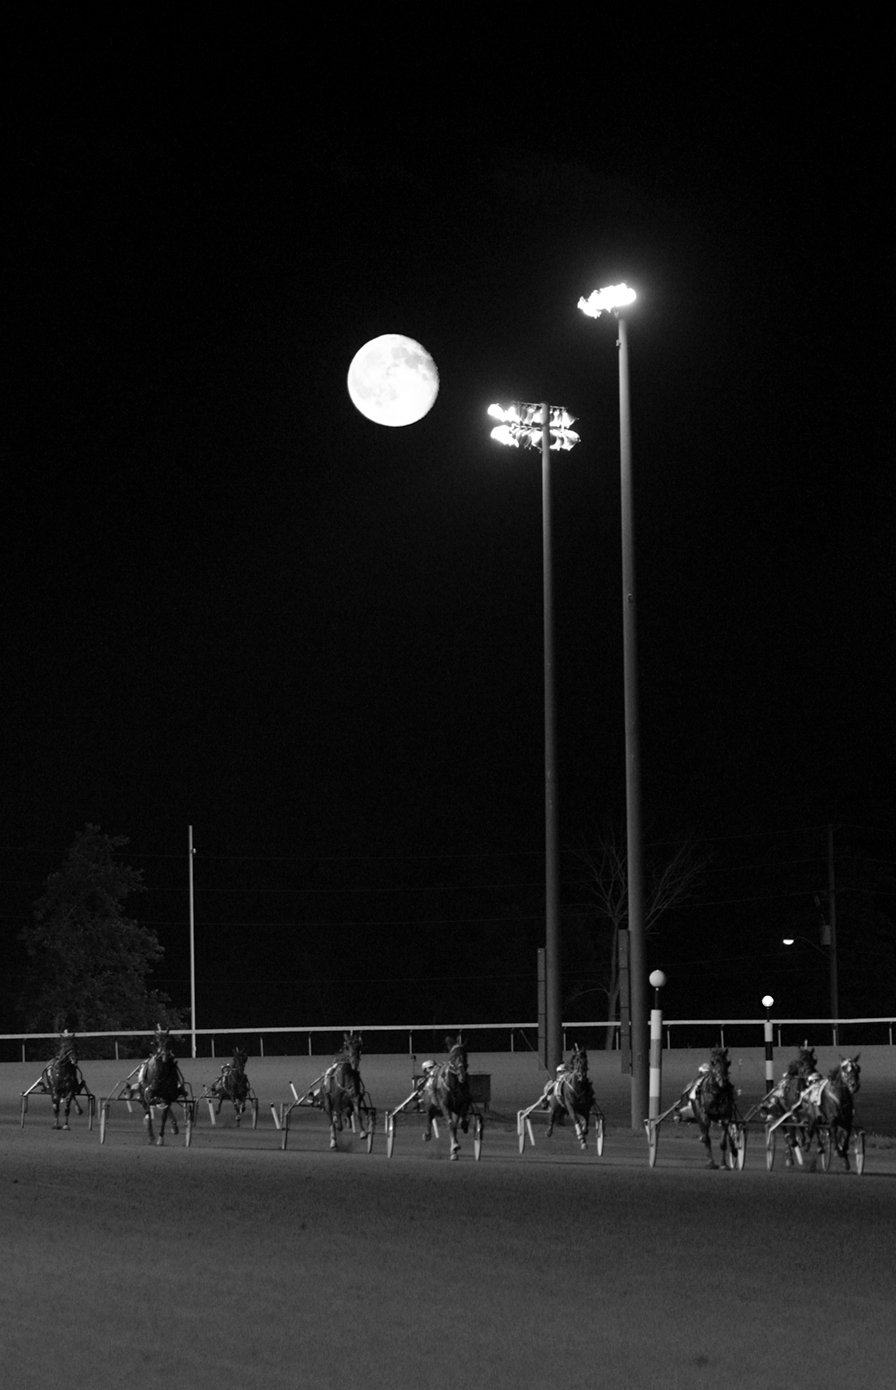 Fullmoon at the Track - bw.jpg